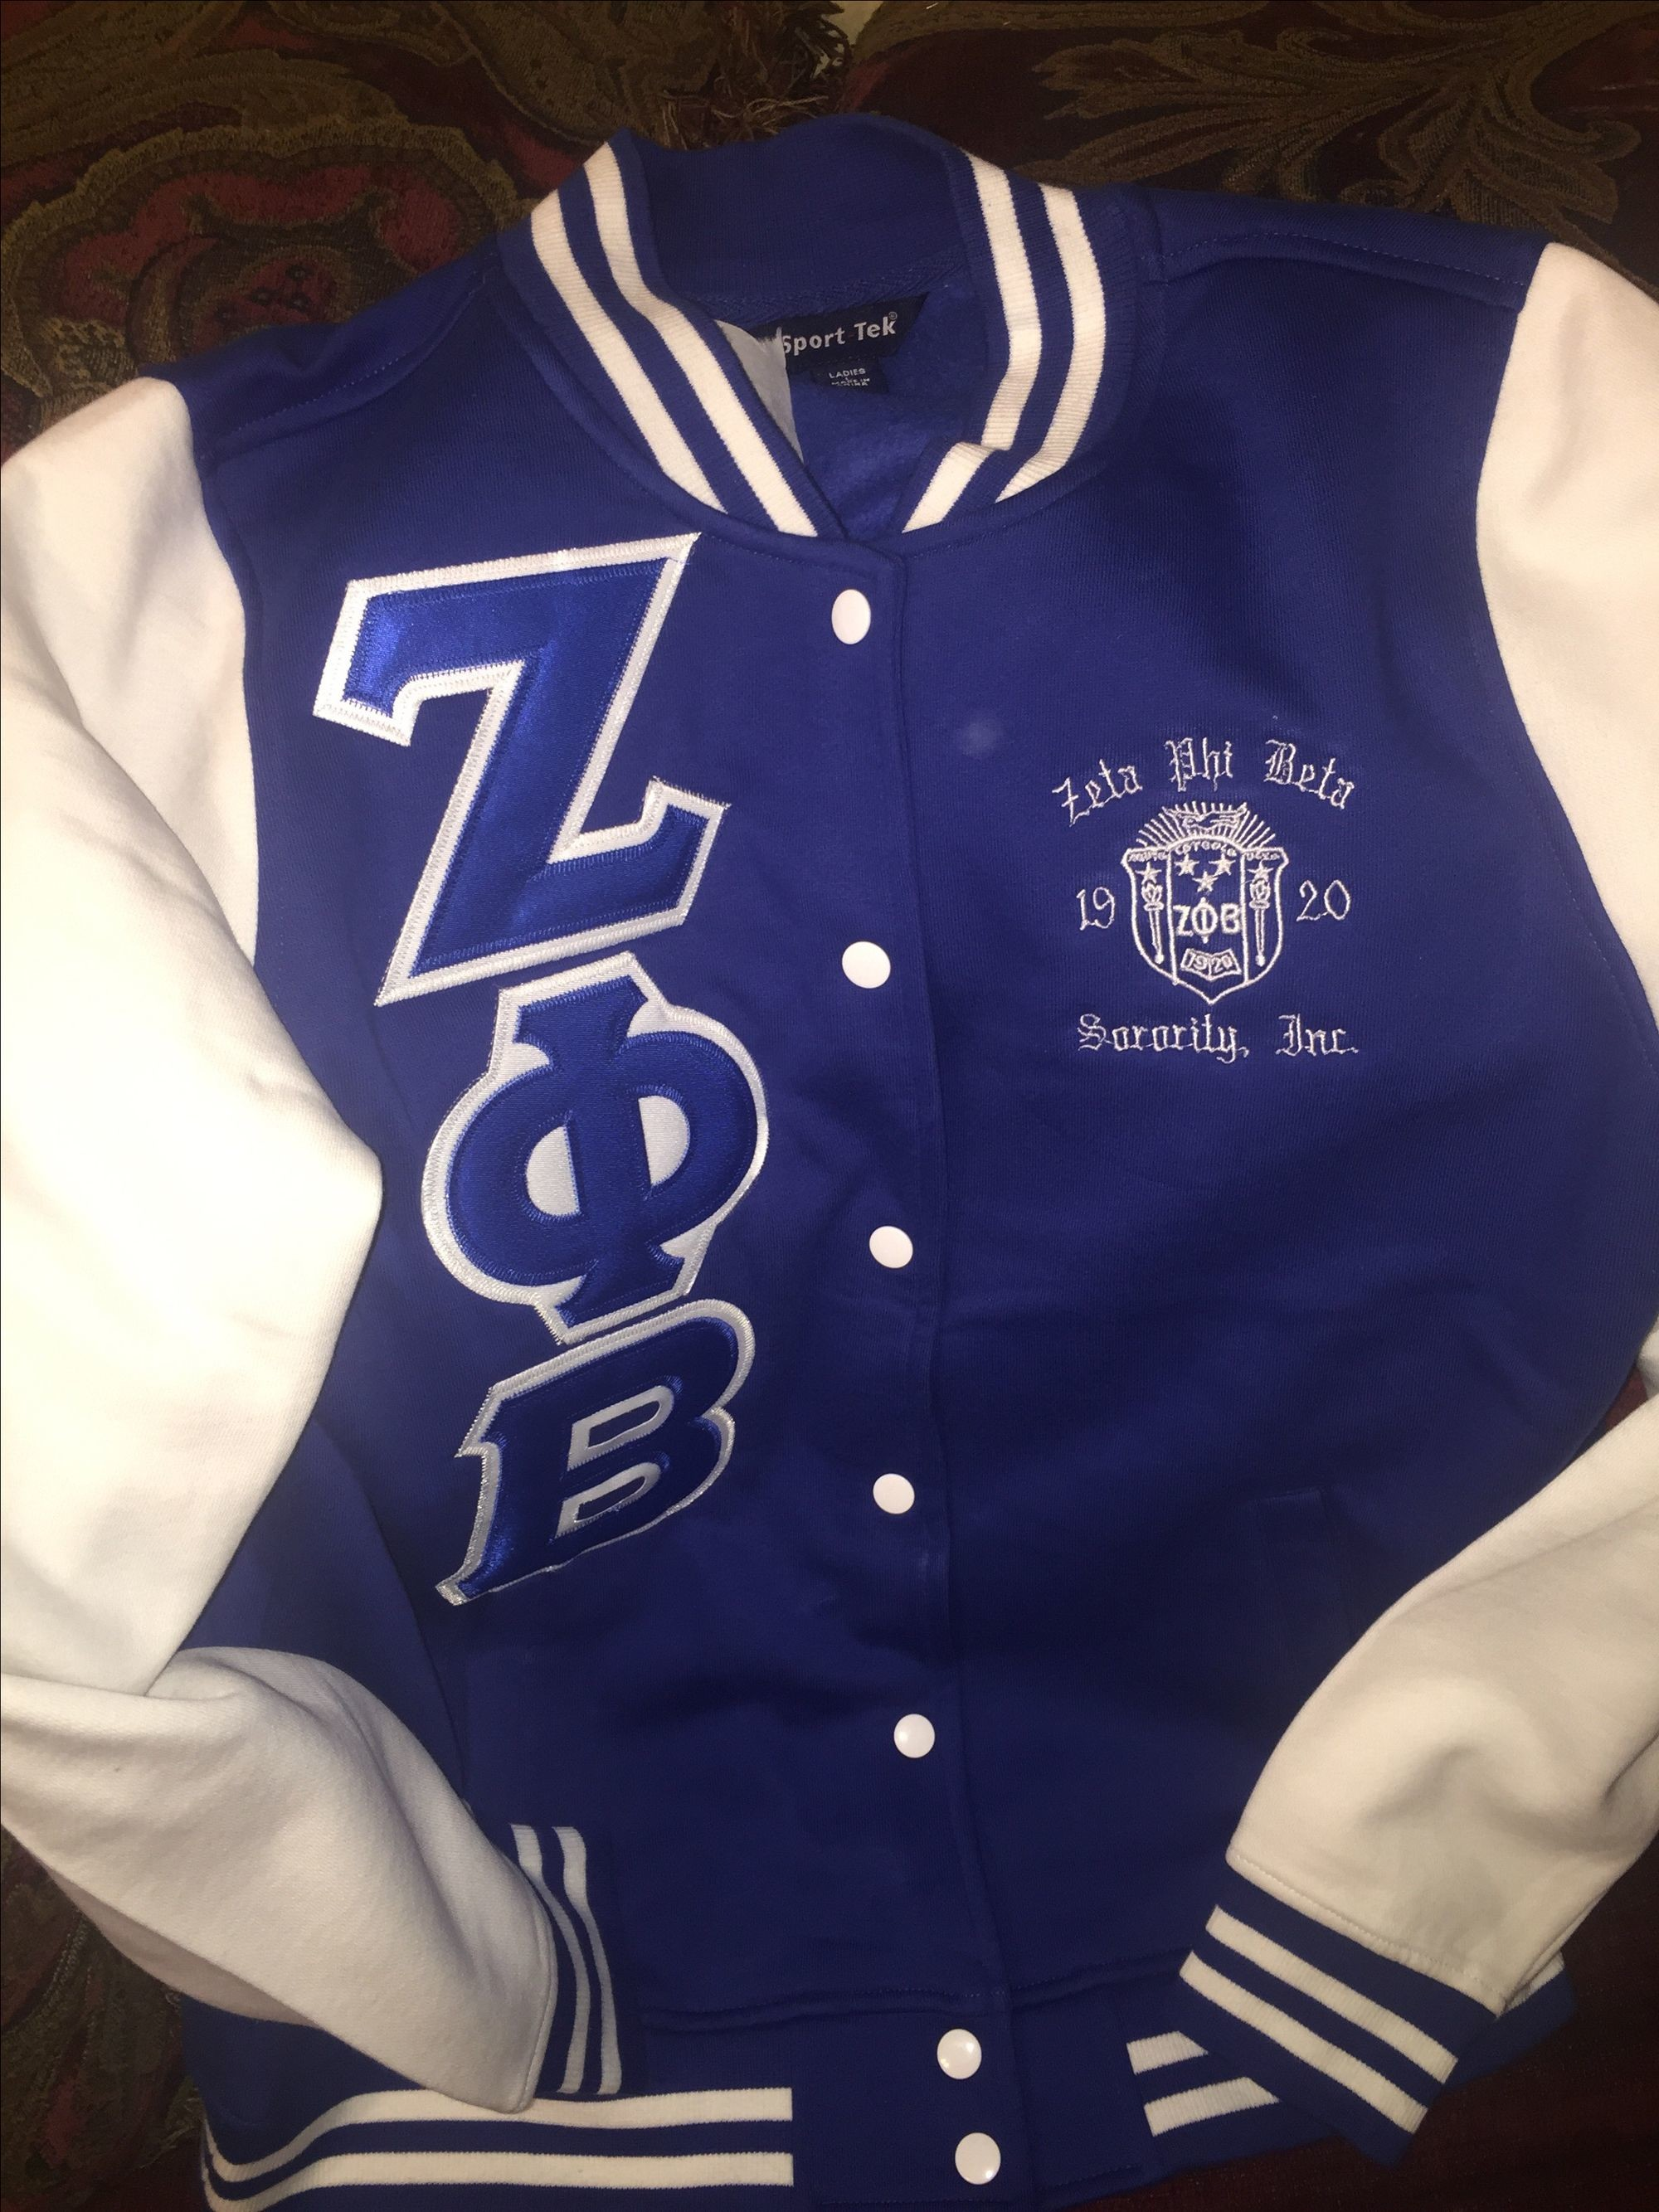 Royal Zeta Phi Beta Letterman Jacket with Embroidered Zeta Crest •  GreekExpressions Embroidery Specialis… • Tictail